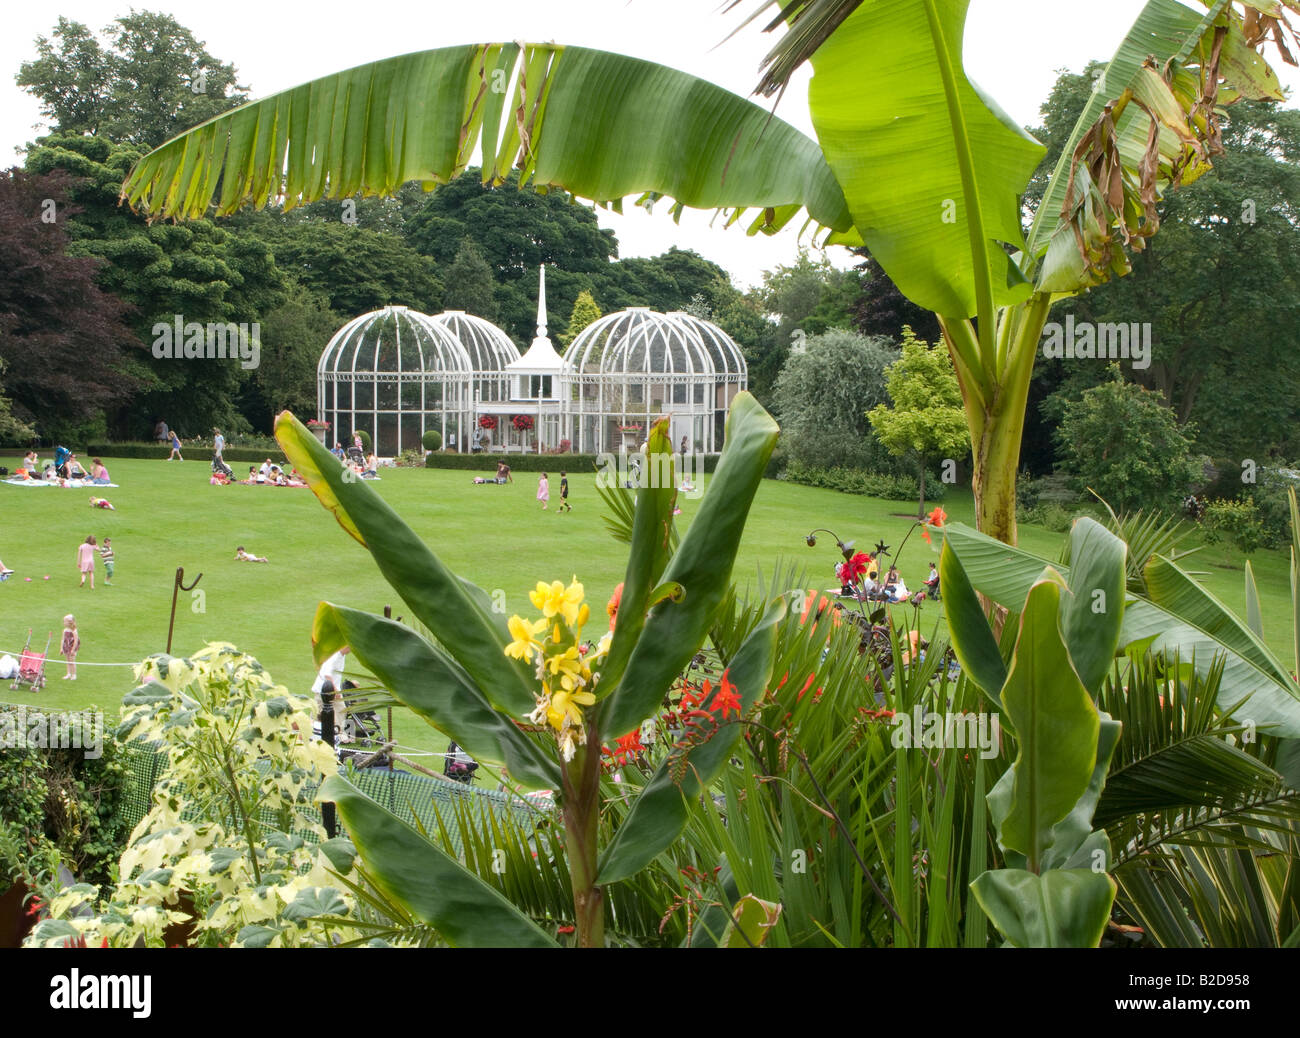 A view of the famous lawn aviary at birmingham botanical gardens stock photo royalty free image for Birmingham botanical gardens birmingham al